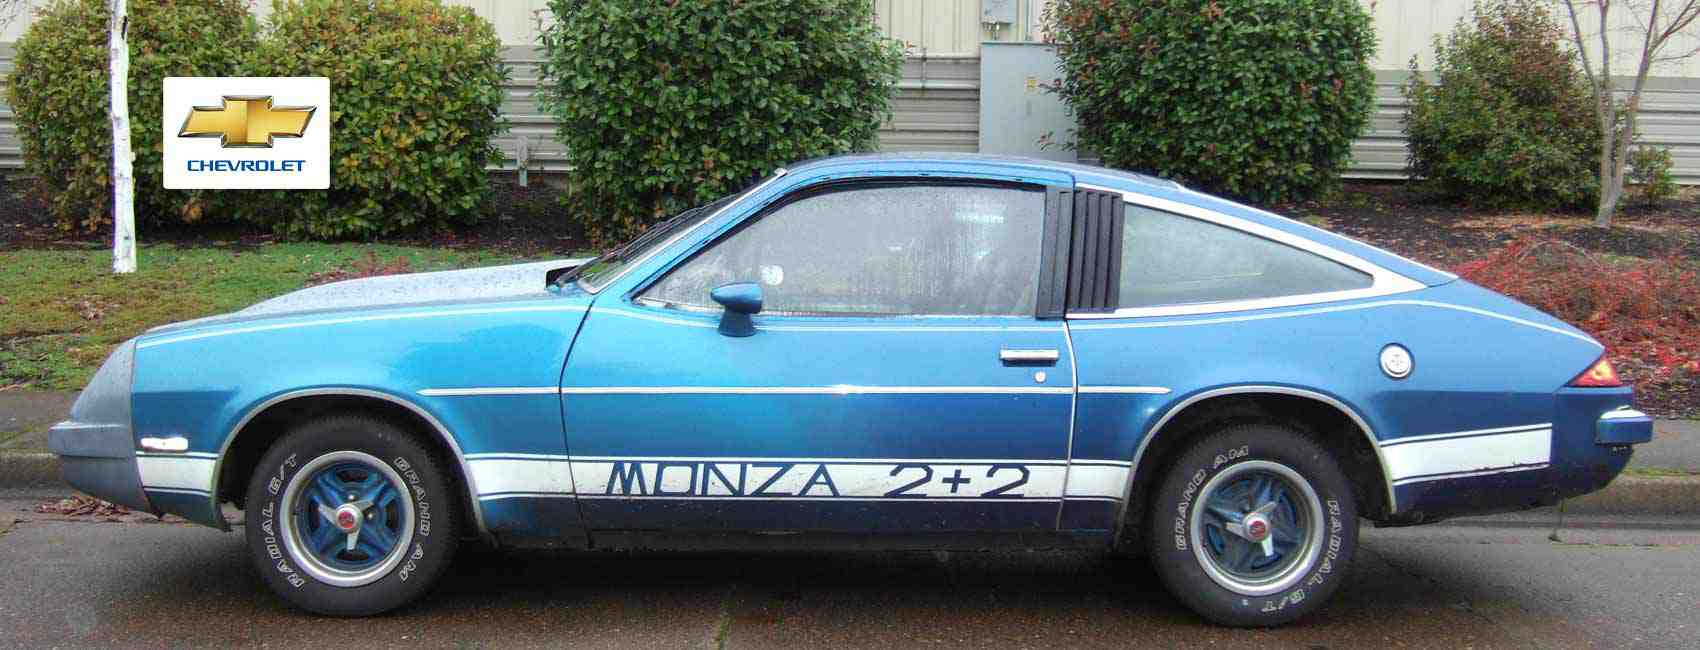 Chevy Monza Parts Buy Used Chevy Monza Parts Online Best Price